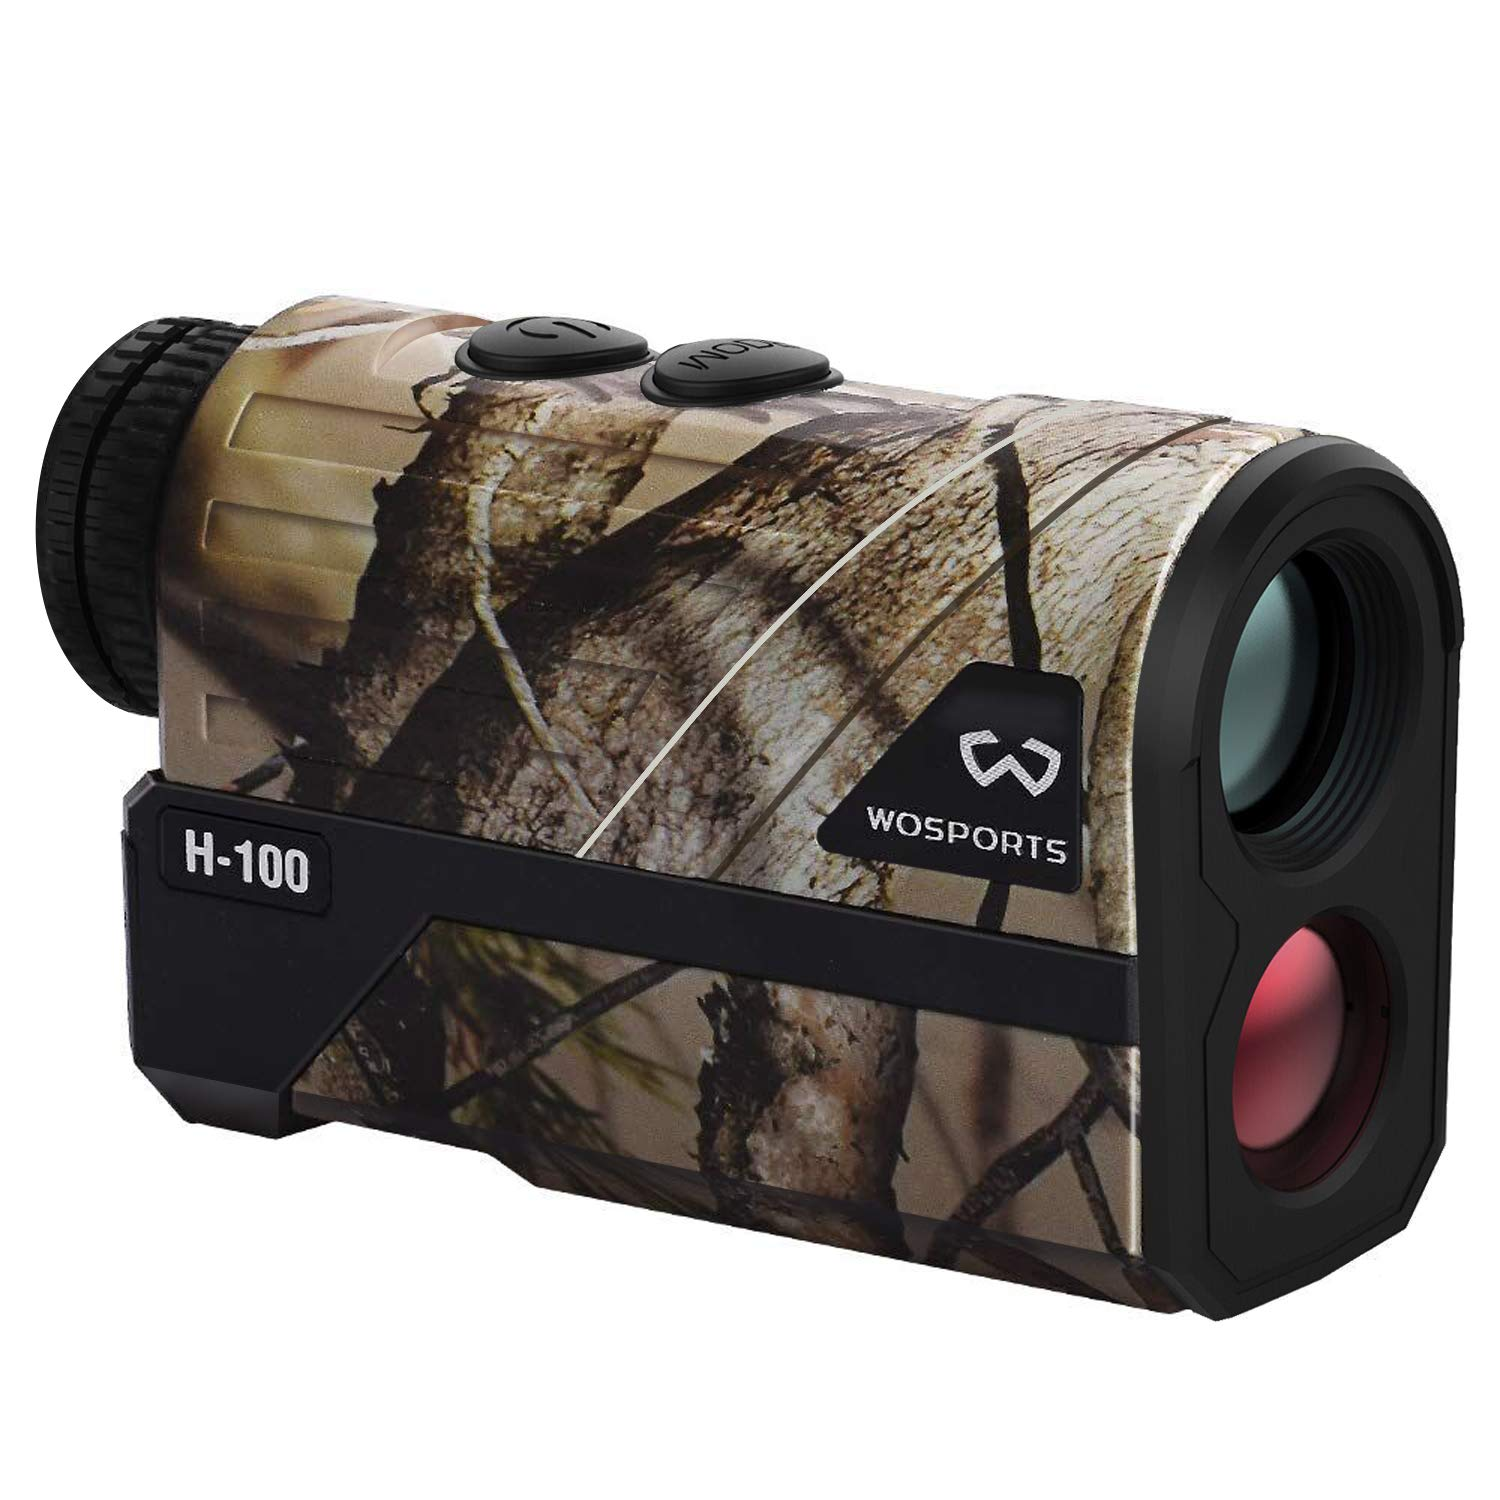 Wosports Hunting Range Finder, Upgraded Battery Cover - Laser Rangefinder Archery Bow Hunting Ranging, Flagpole Lock, Speed - Free Battery (1000 Yards) by WOSPORTS